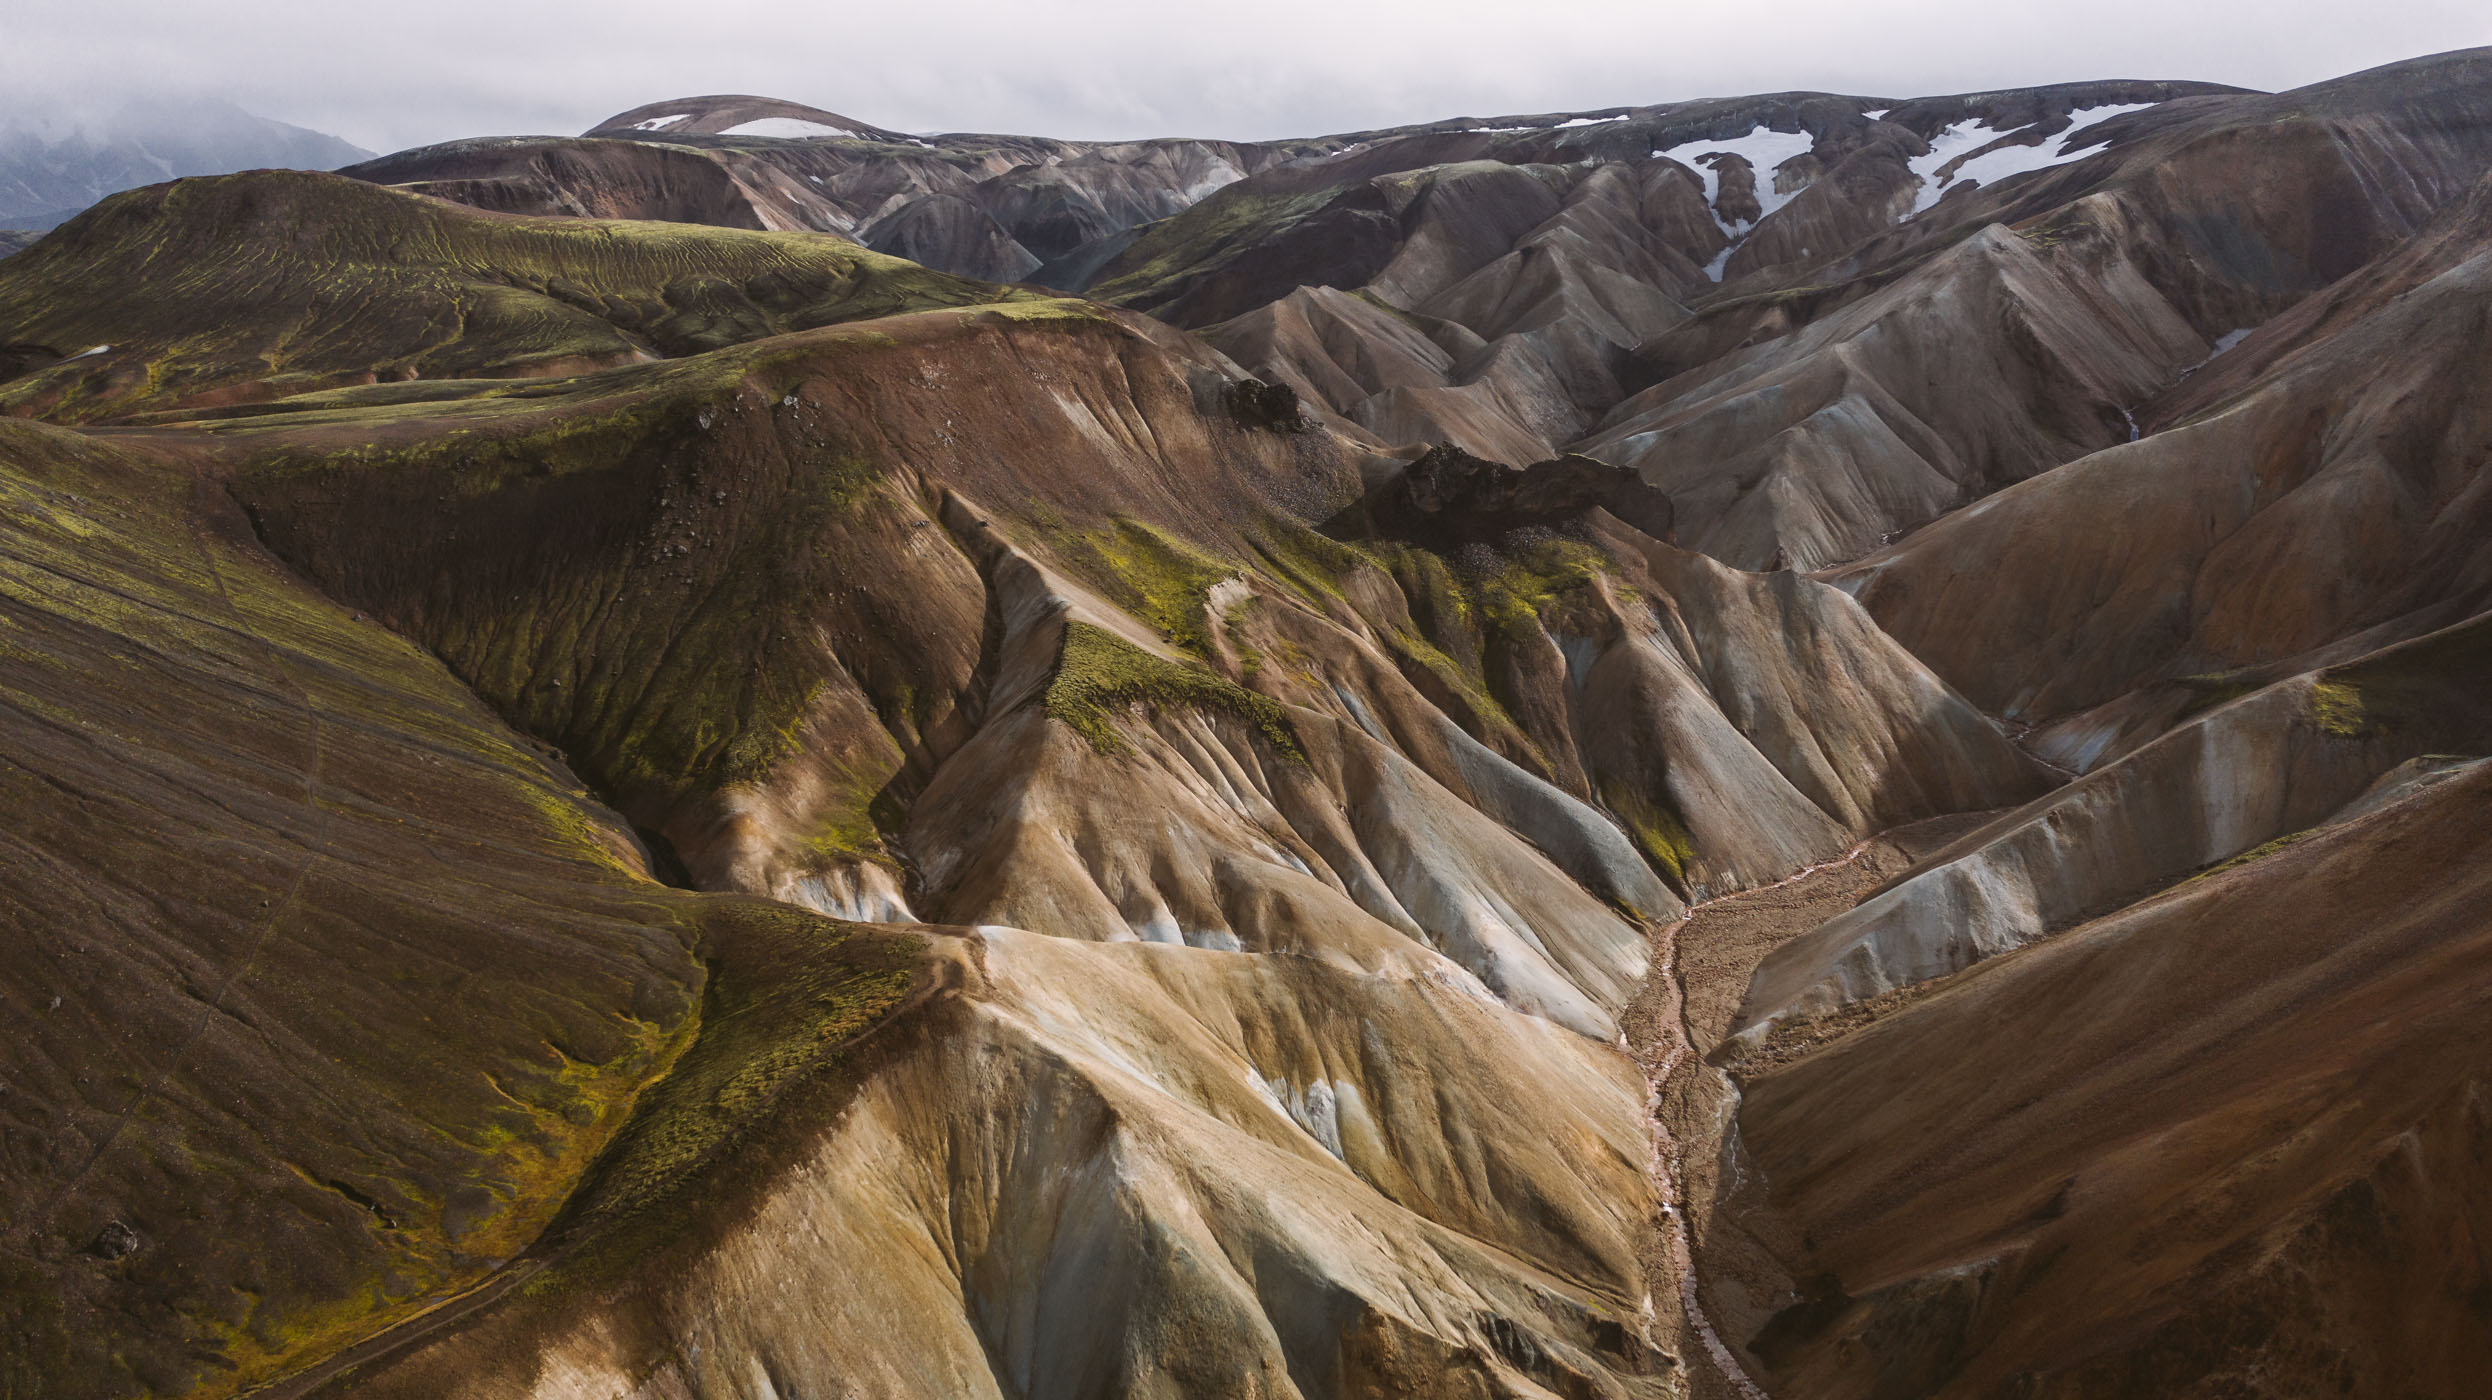 Brennisteinsalda mountain range at Landmannalaugar